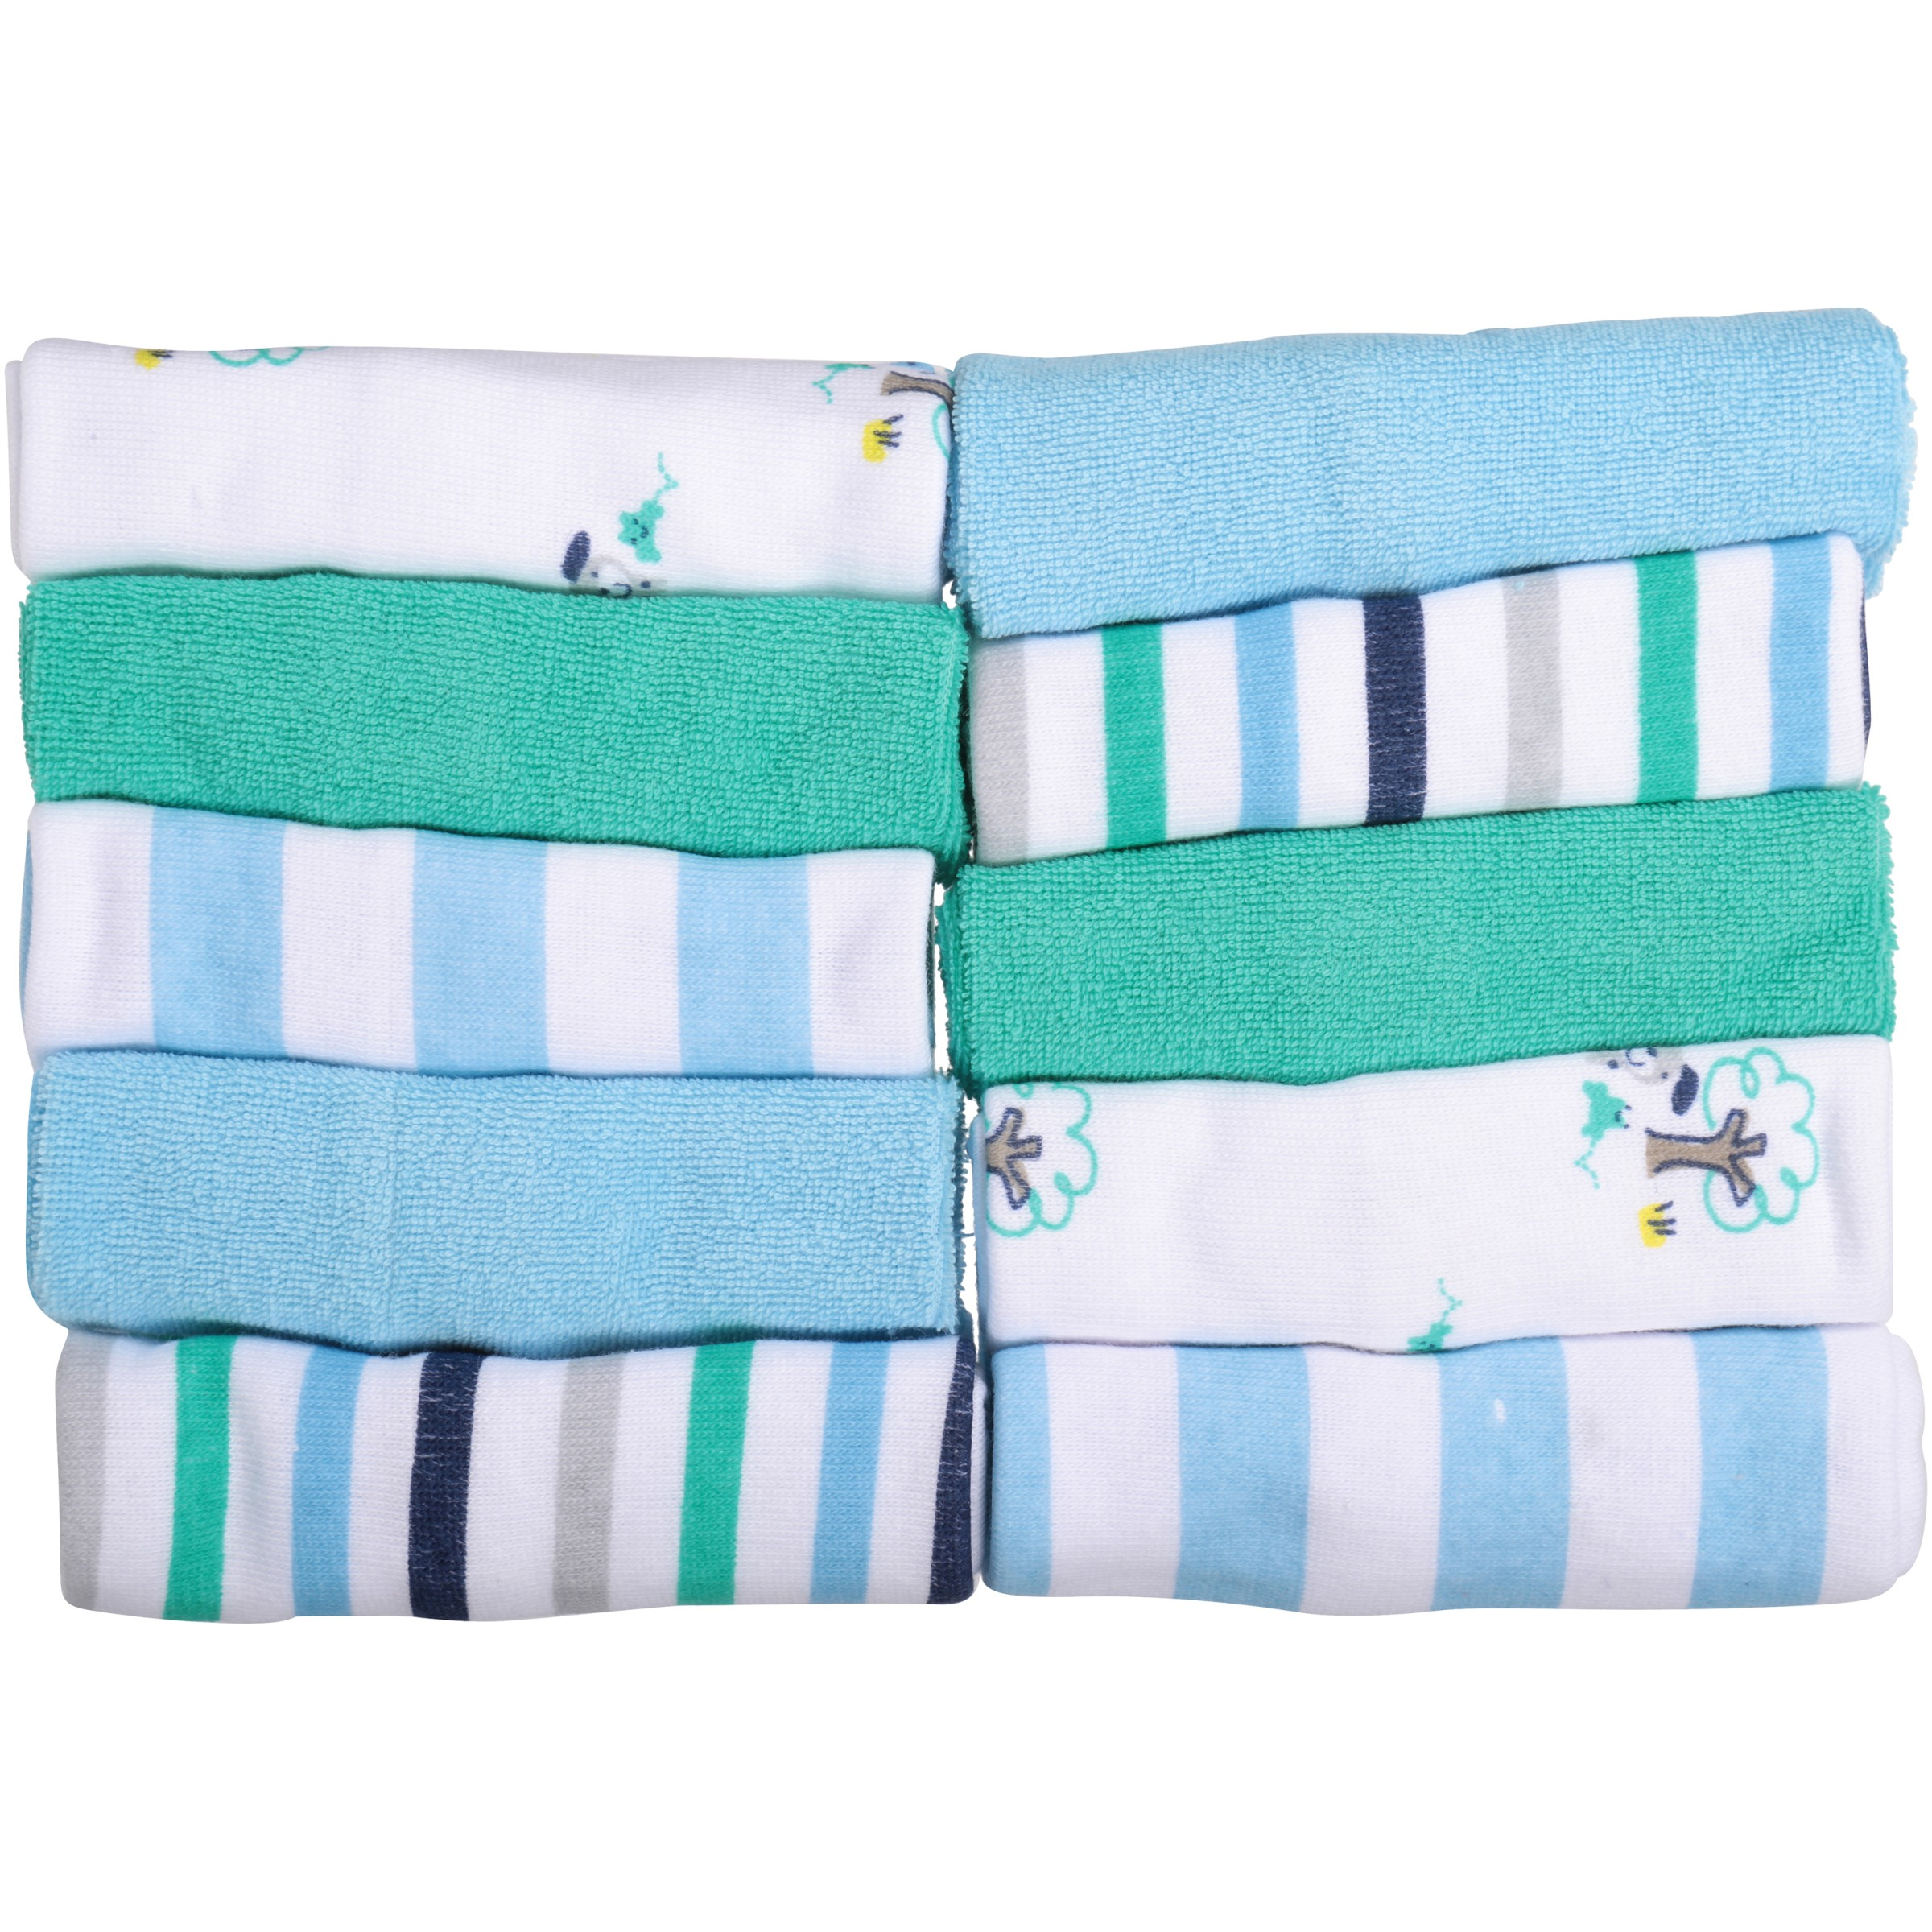 Gerber Newborn Baby Boy Terry Printed Washcloths, Dog, 10 Pack